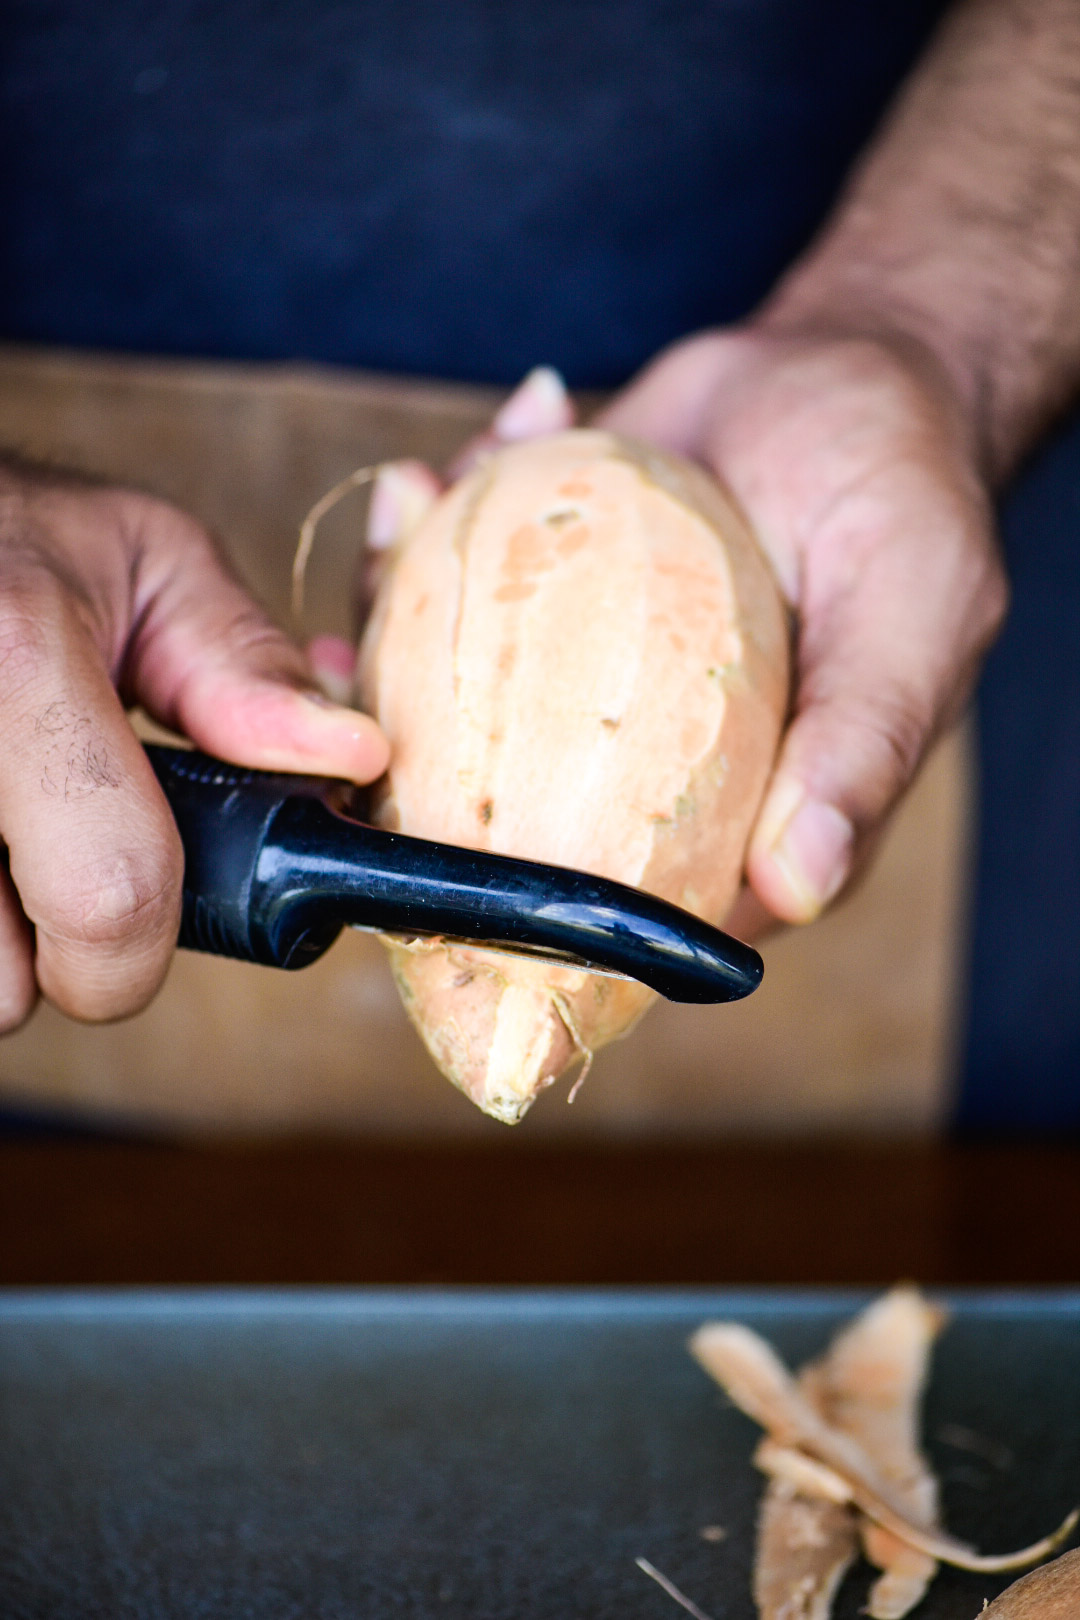 peeling and removing skin from sweet potatoes